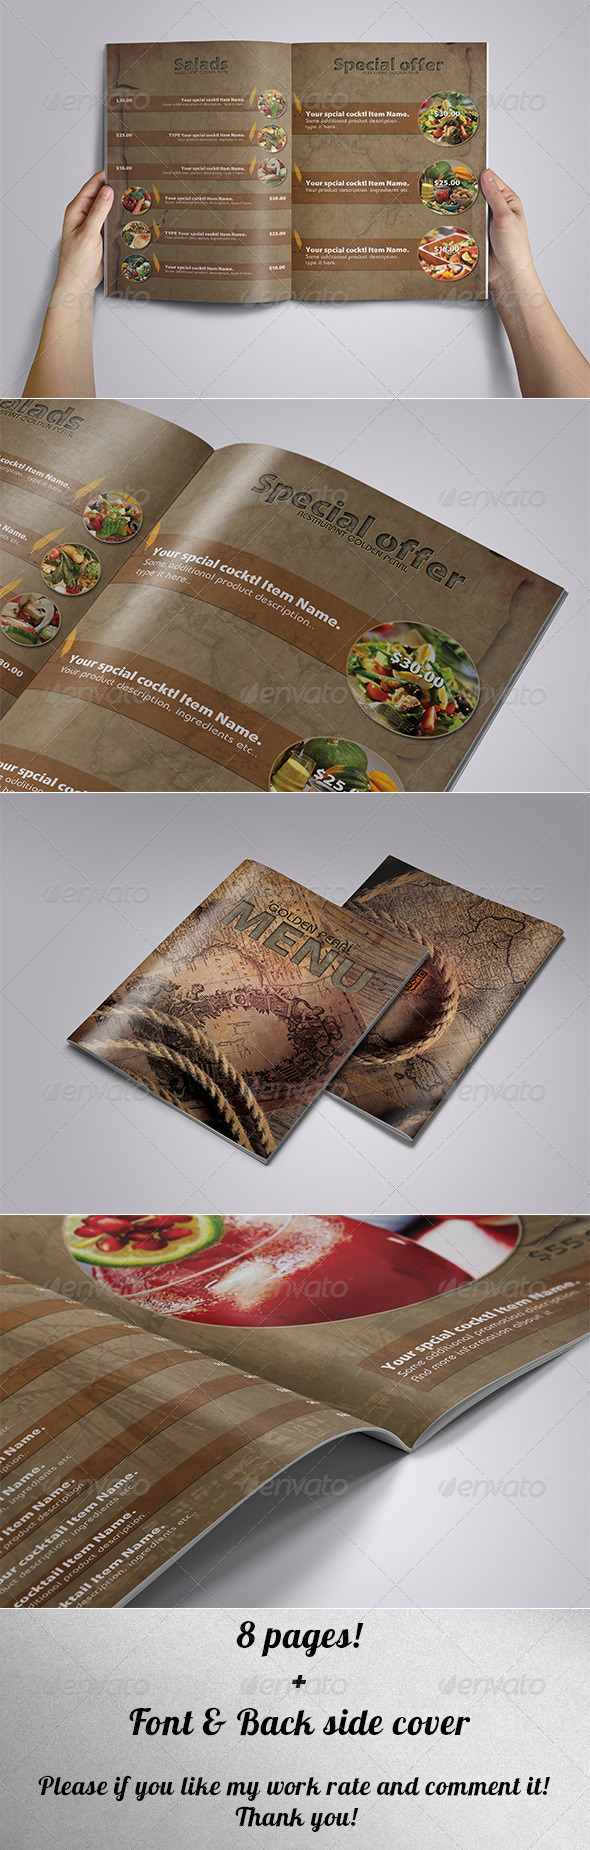 Restaurant Menu - Ancient Style - Food Menus Print Templates